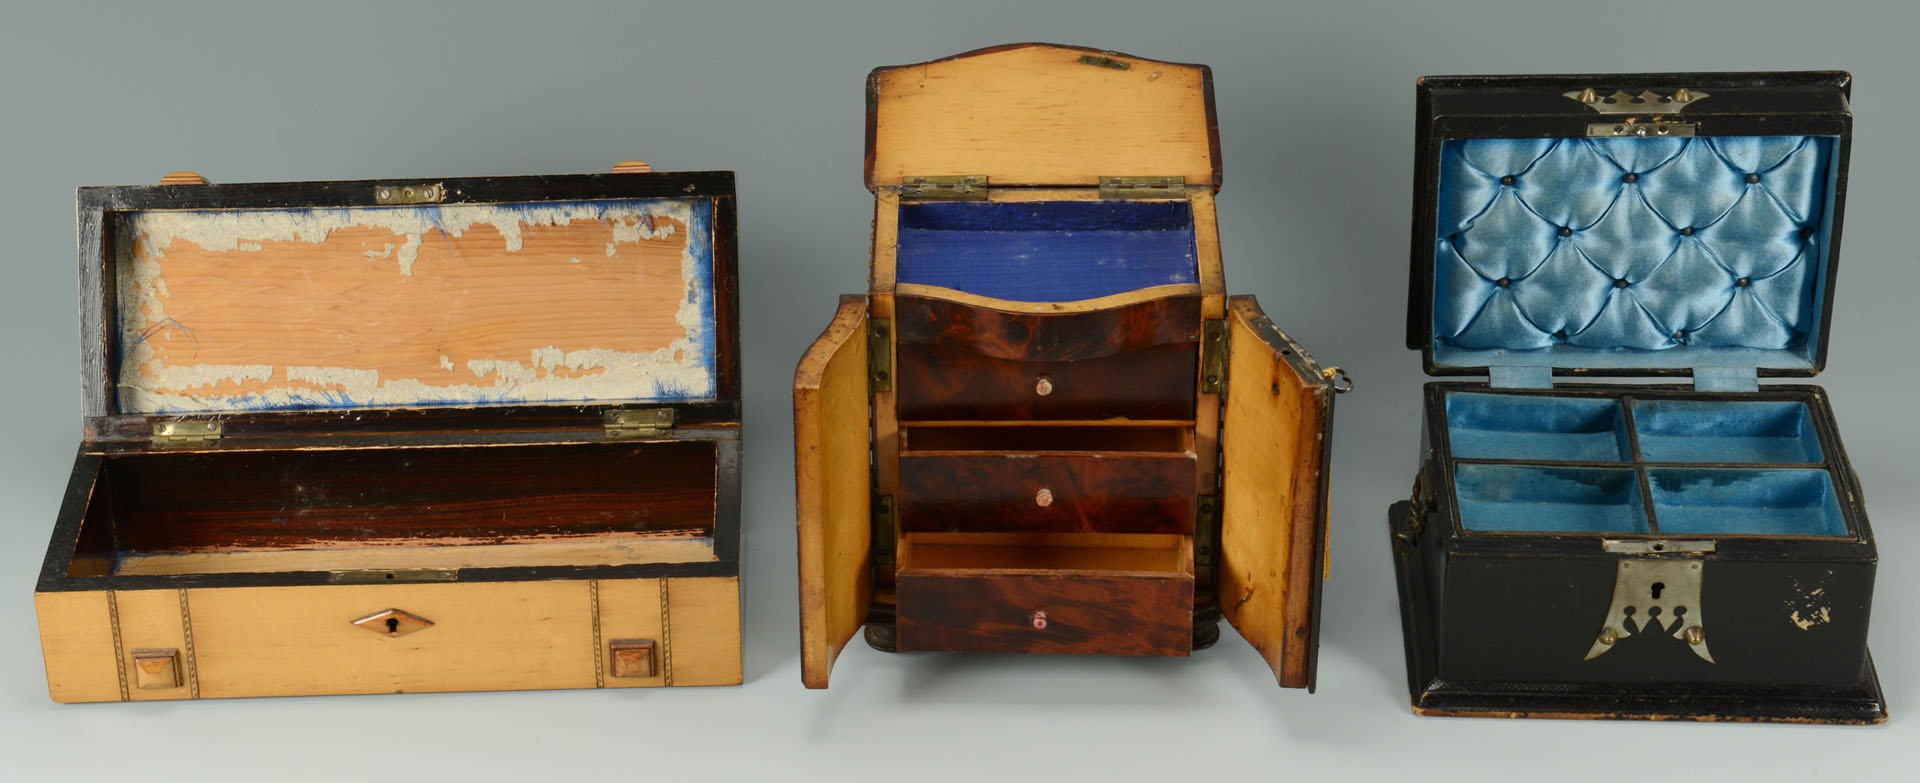 3 Decorative Boxes and Pair of Asian Shelves